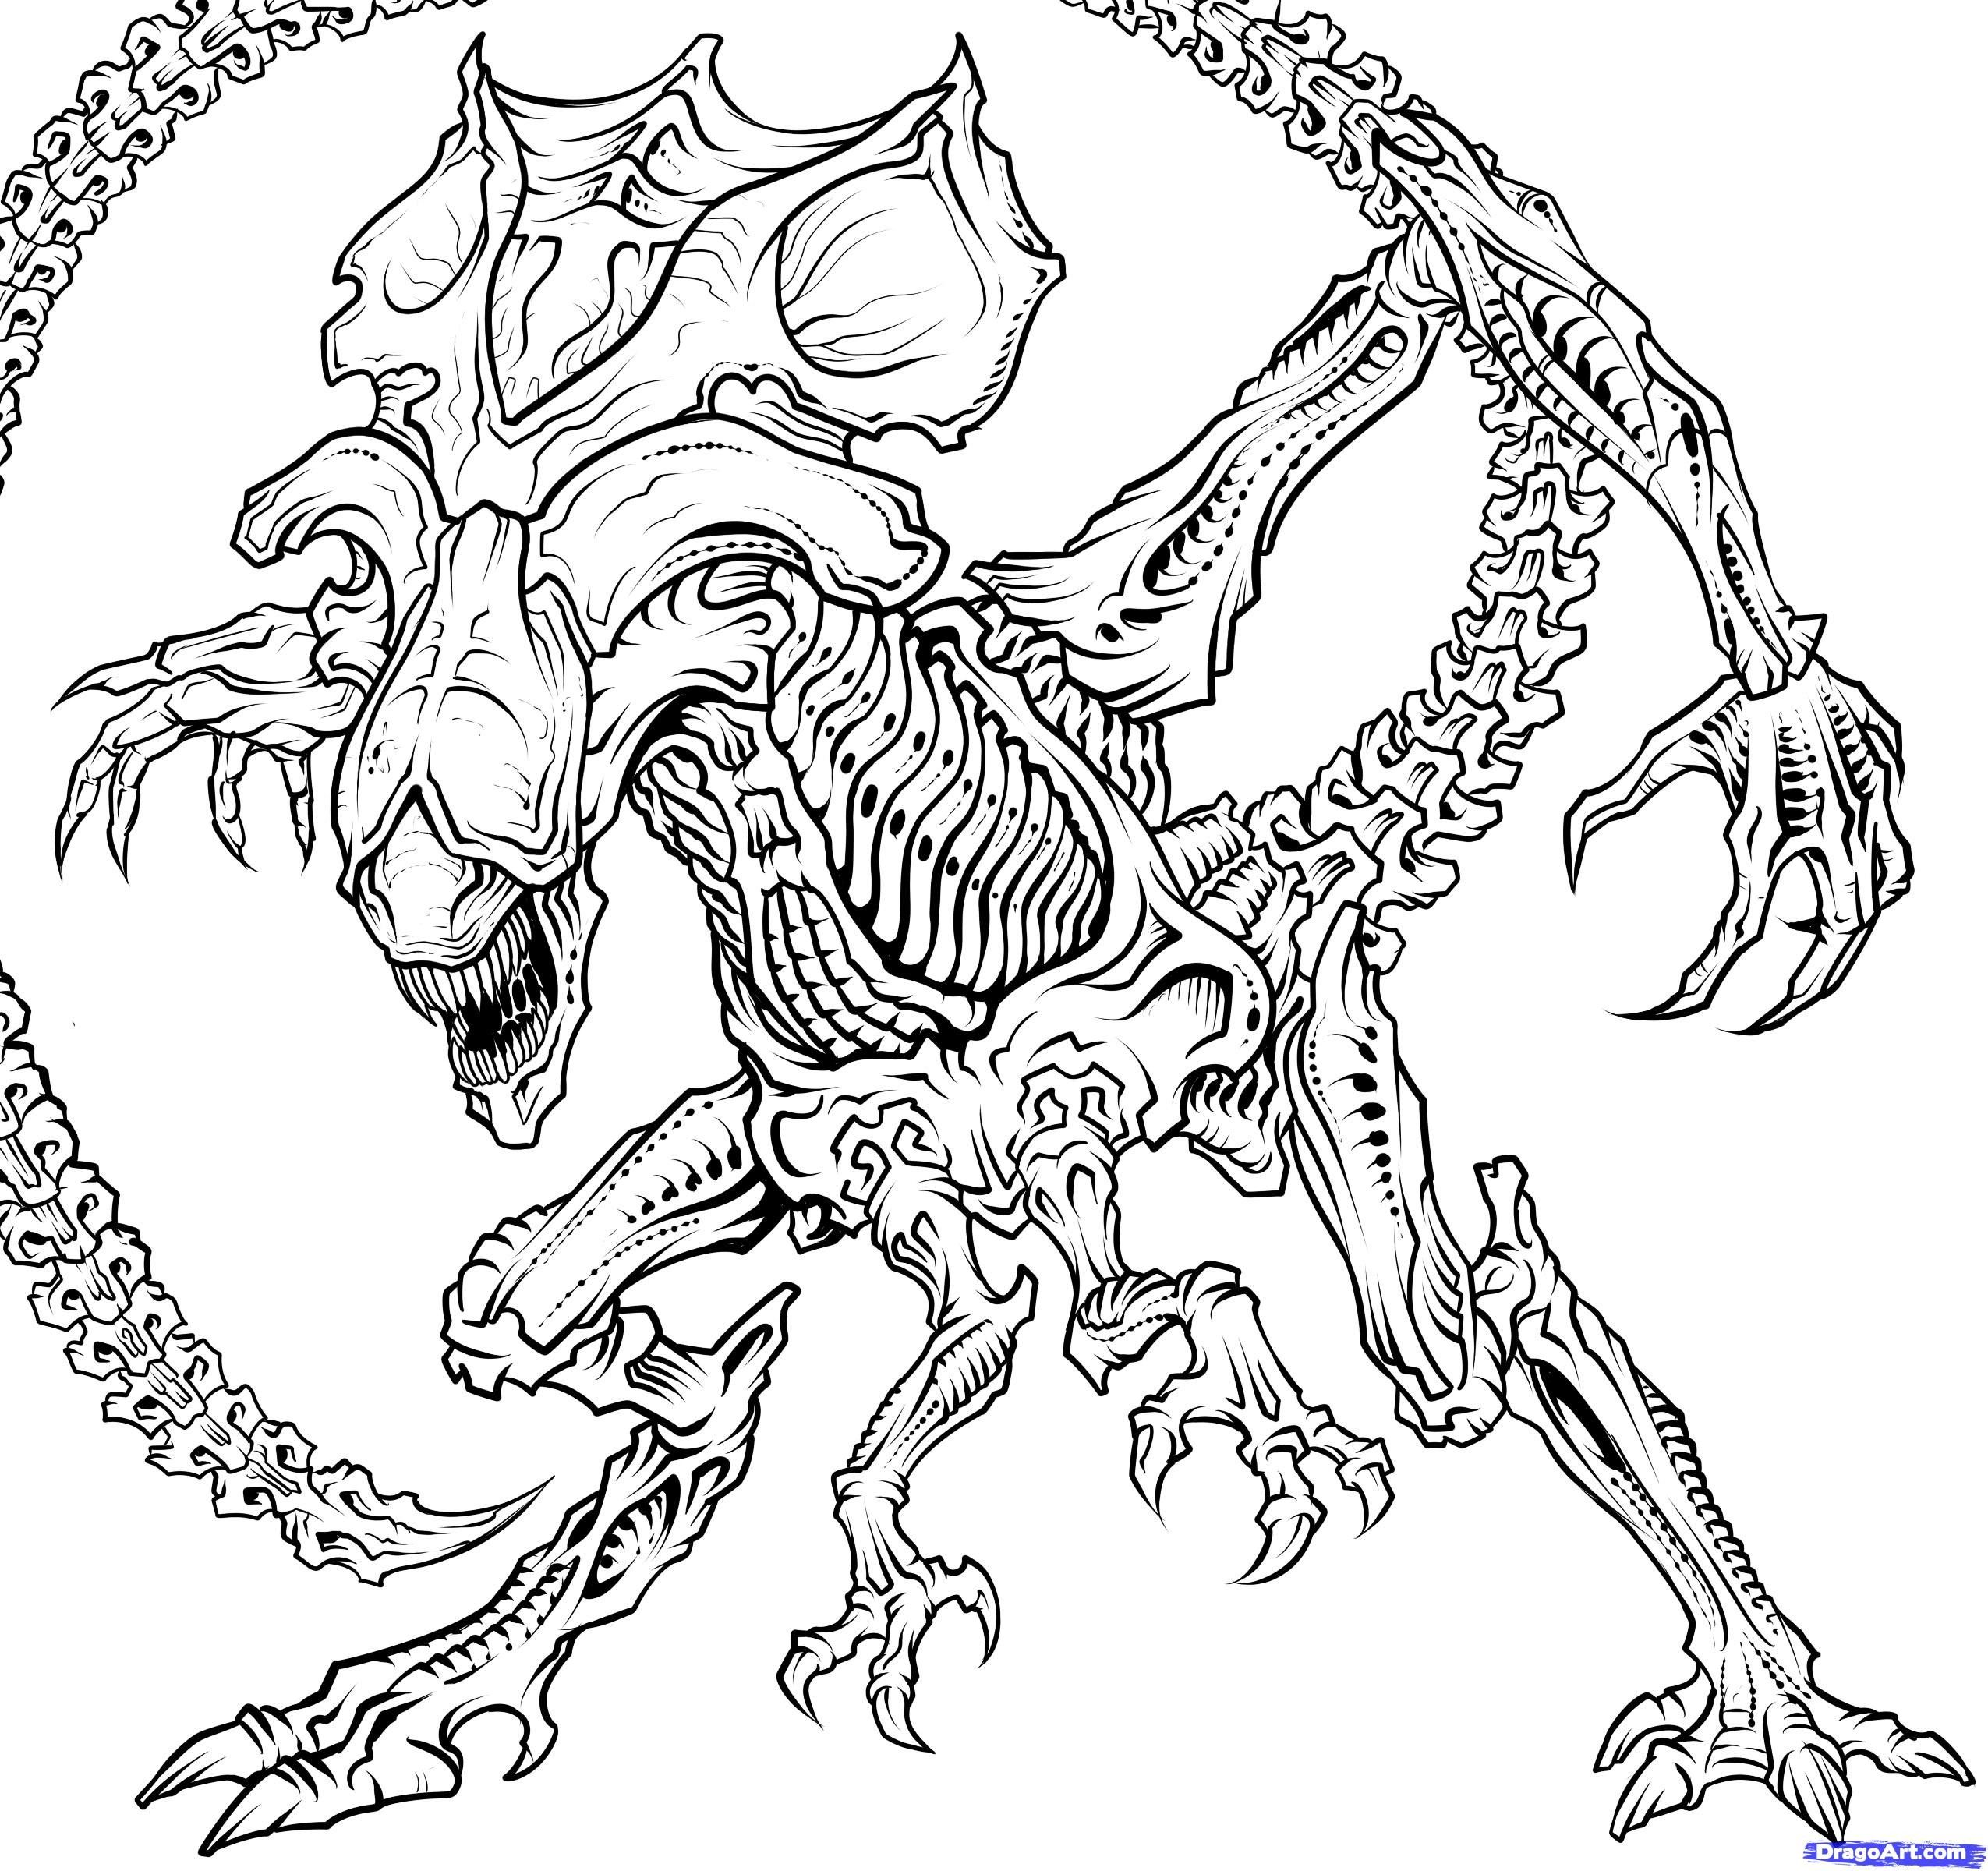 Image result for xenomorph coloring pages